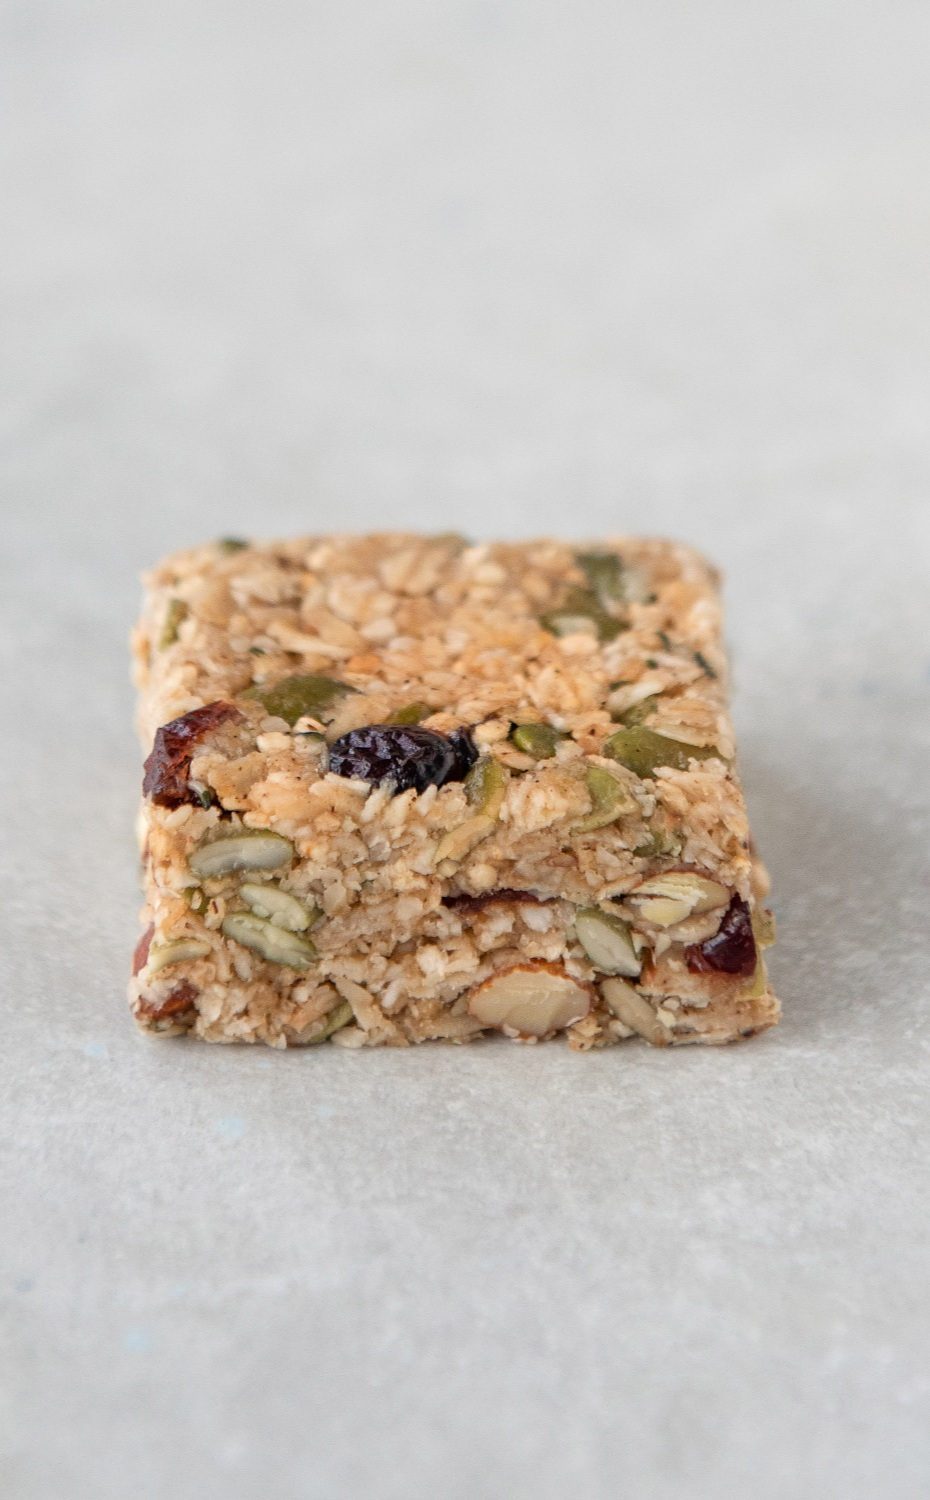 Trail Mix Feature Granola Bar